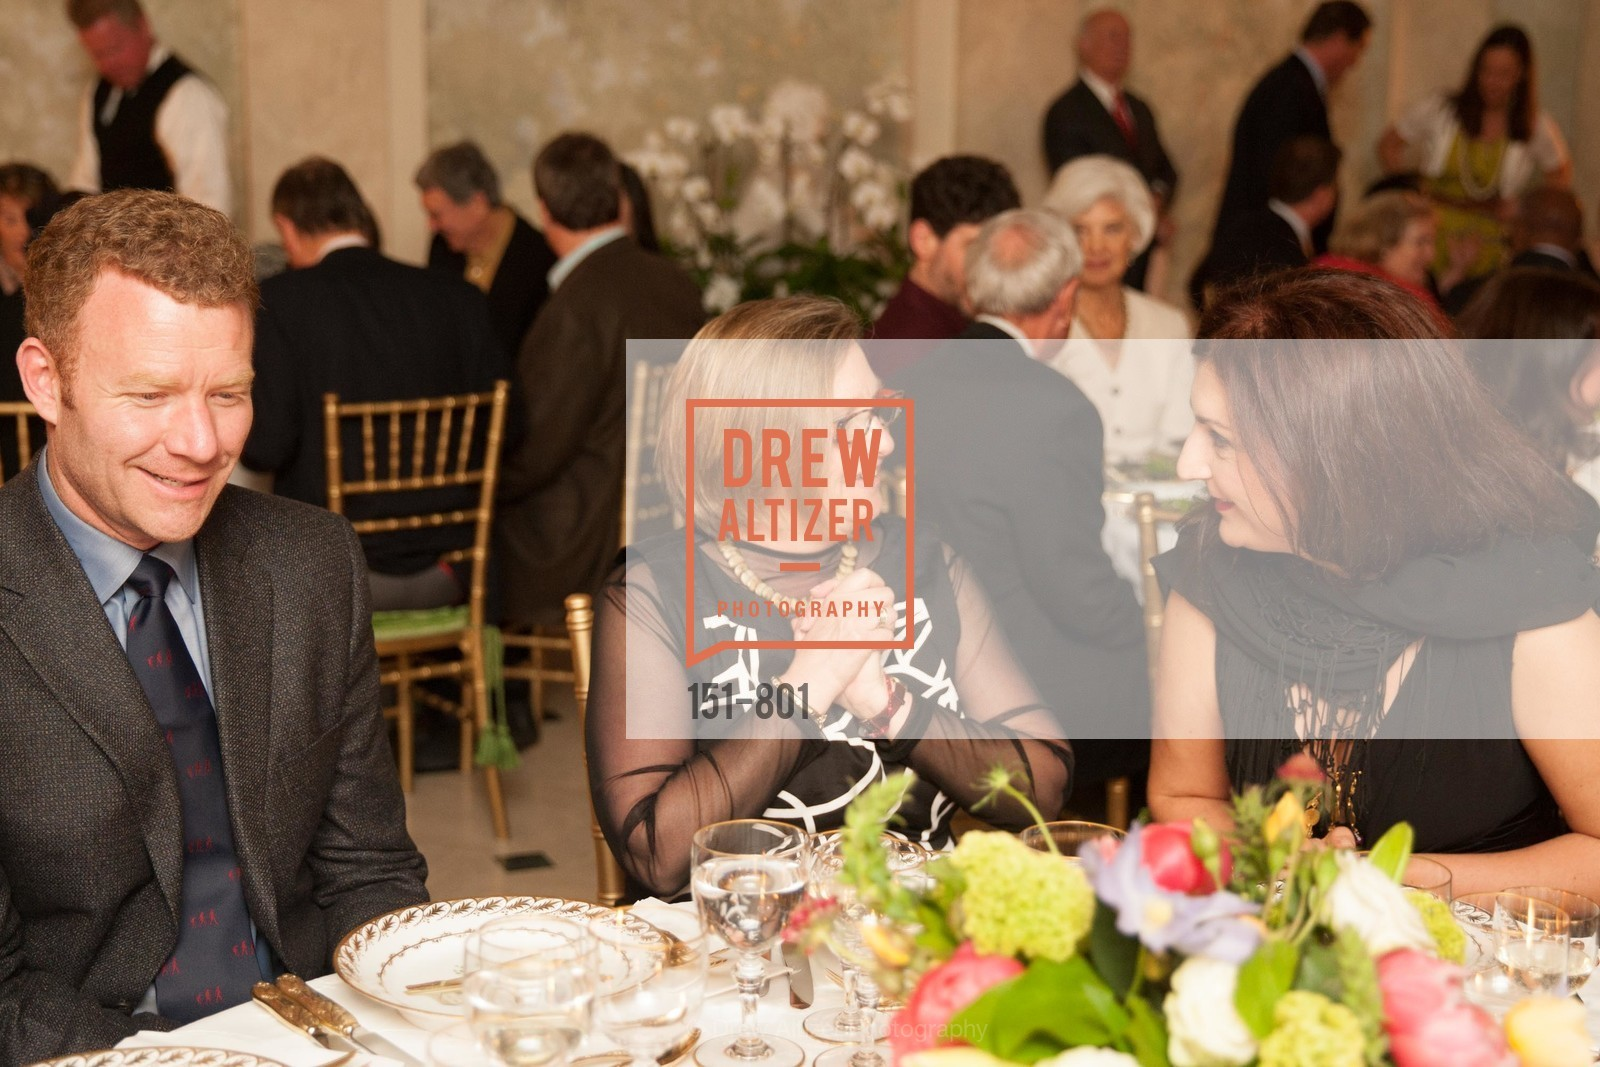 Martin Muller, Janice Bell Kaye, Anna Bayat King, GETTY Hosts Leakey Foundation Dinner, US, April 23rd, 2015,Drew Altizer, Drew Altizer Photography, full-service agency, private events, San Francisco photographer, photographer california